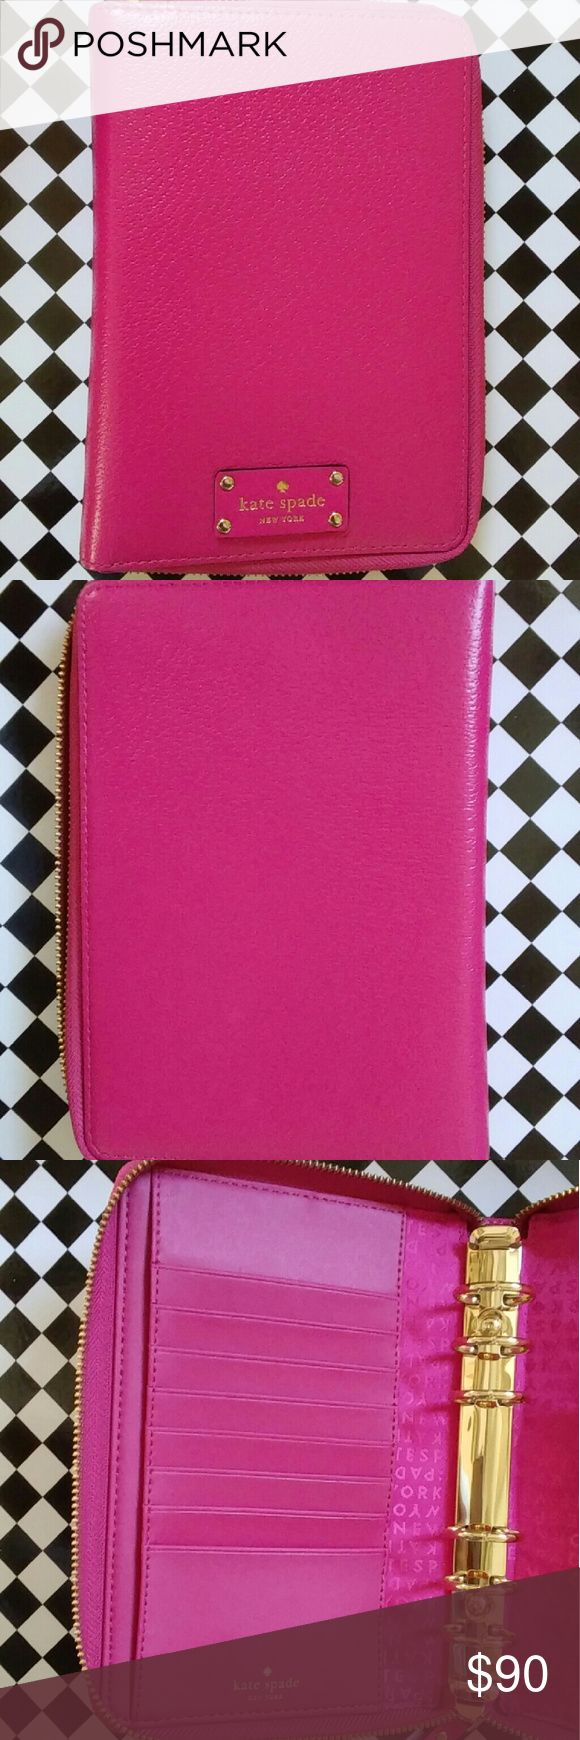 Kate Spade Wellesley planner (Re-Posh) This is New and is in excellent condition. I purchased a bigger planner so I no longer need this one. It is gorgeous. *Purchased without inserts. **Purchase will include 1 gold Kate Spade pen * kate spade Other